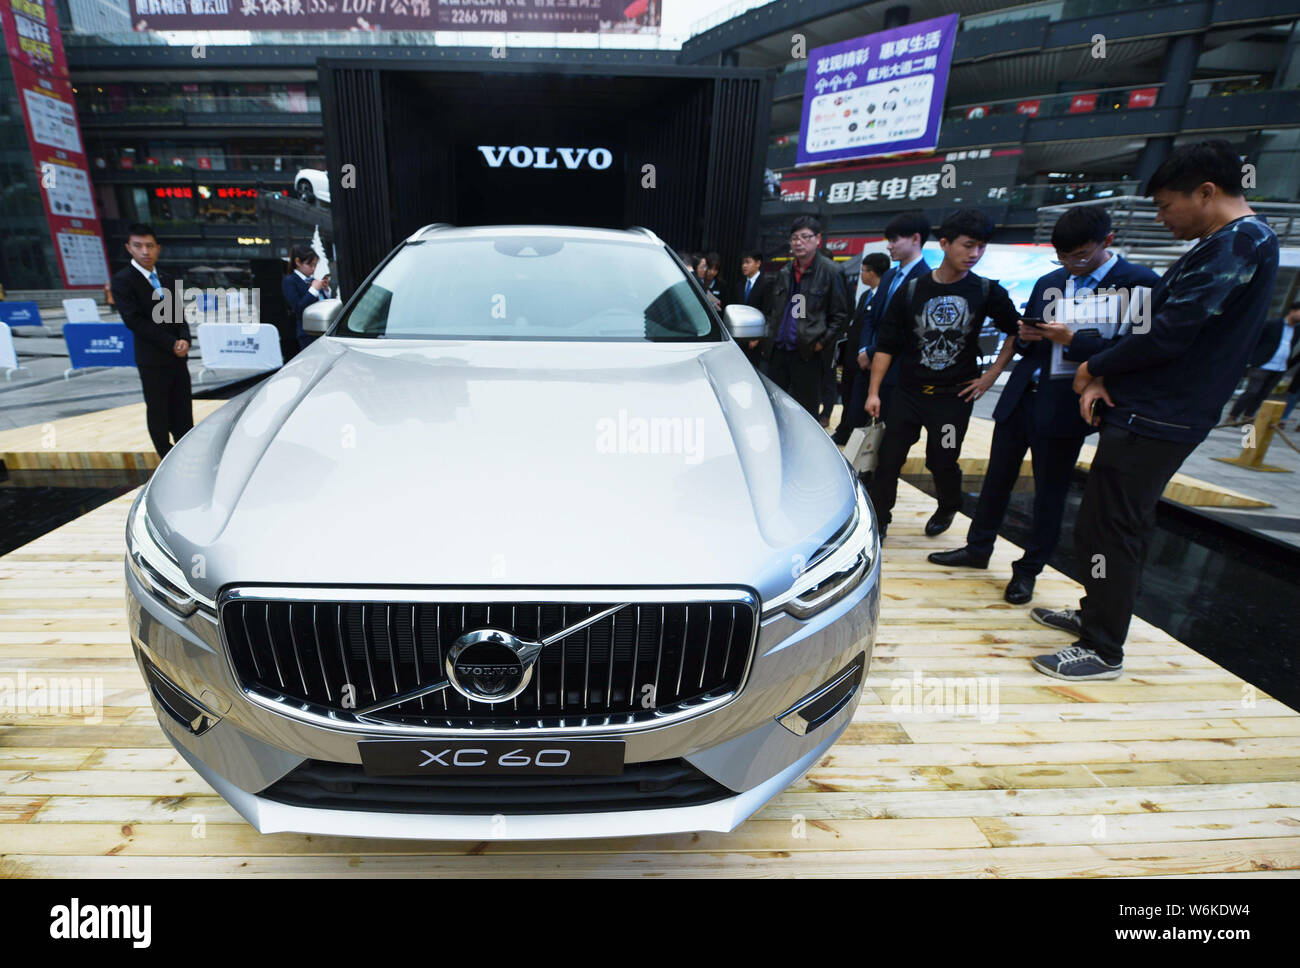 FILE--A Volvo XC60 is on display during an automobile